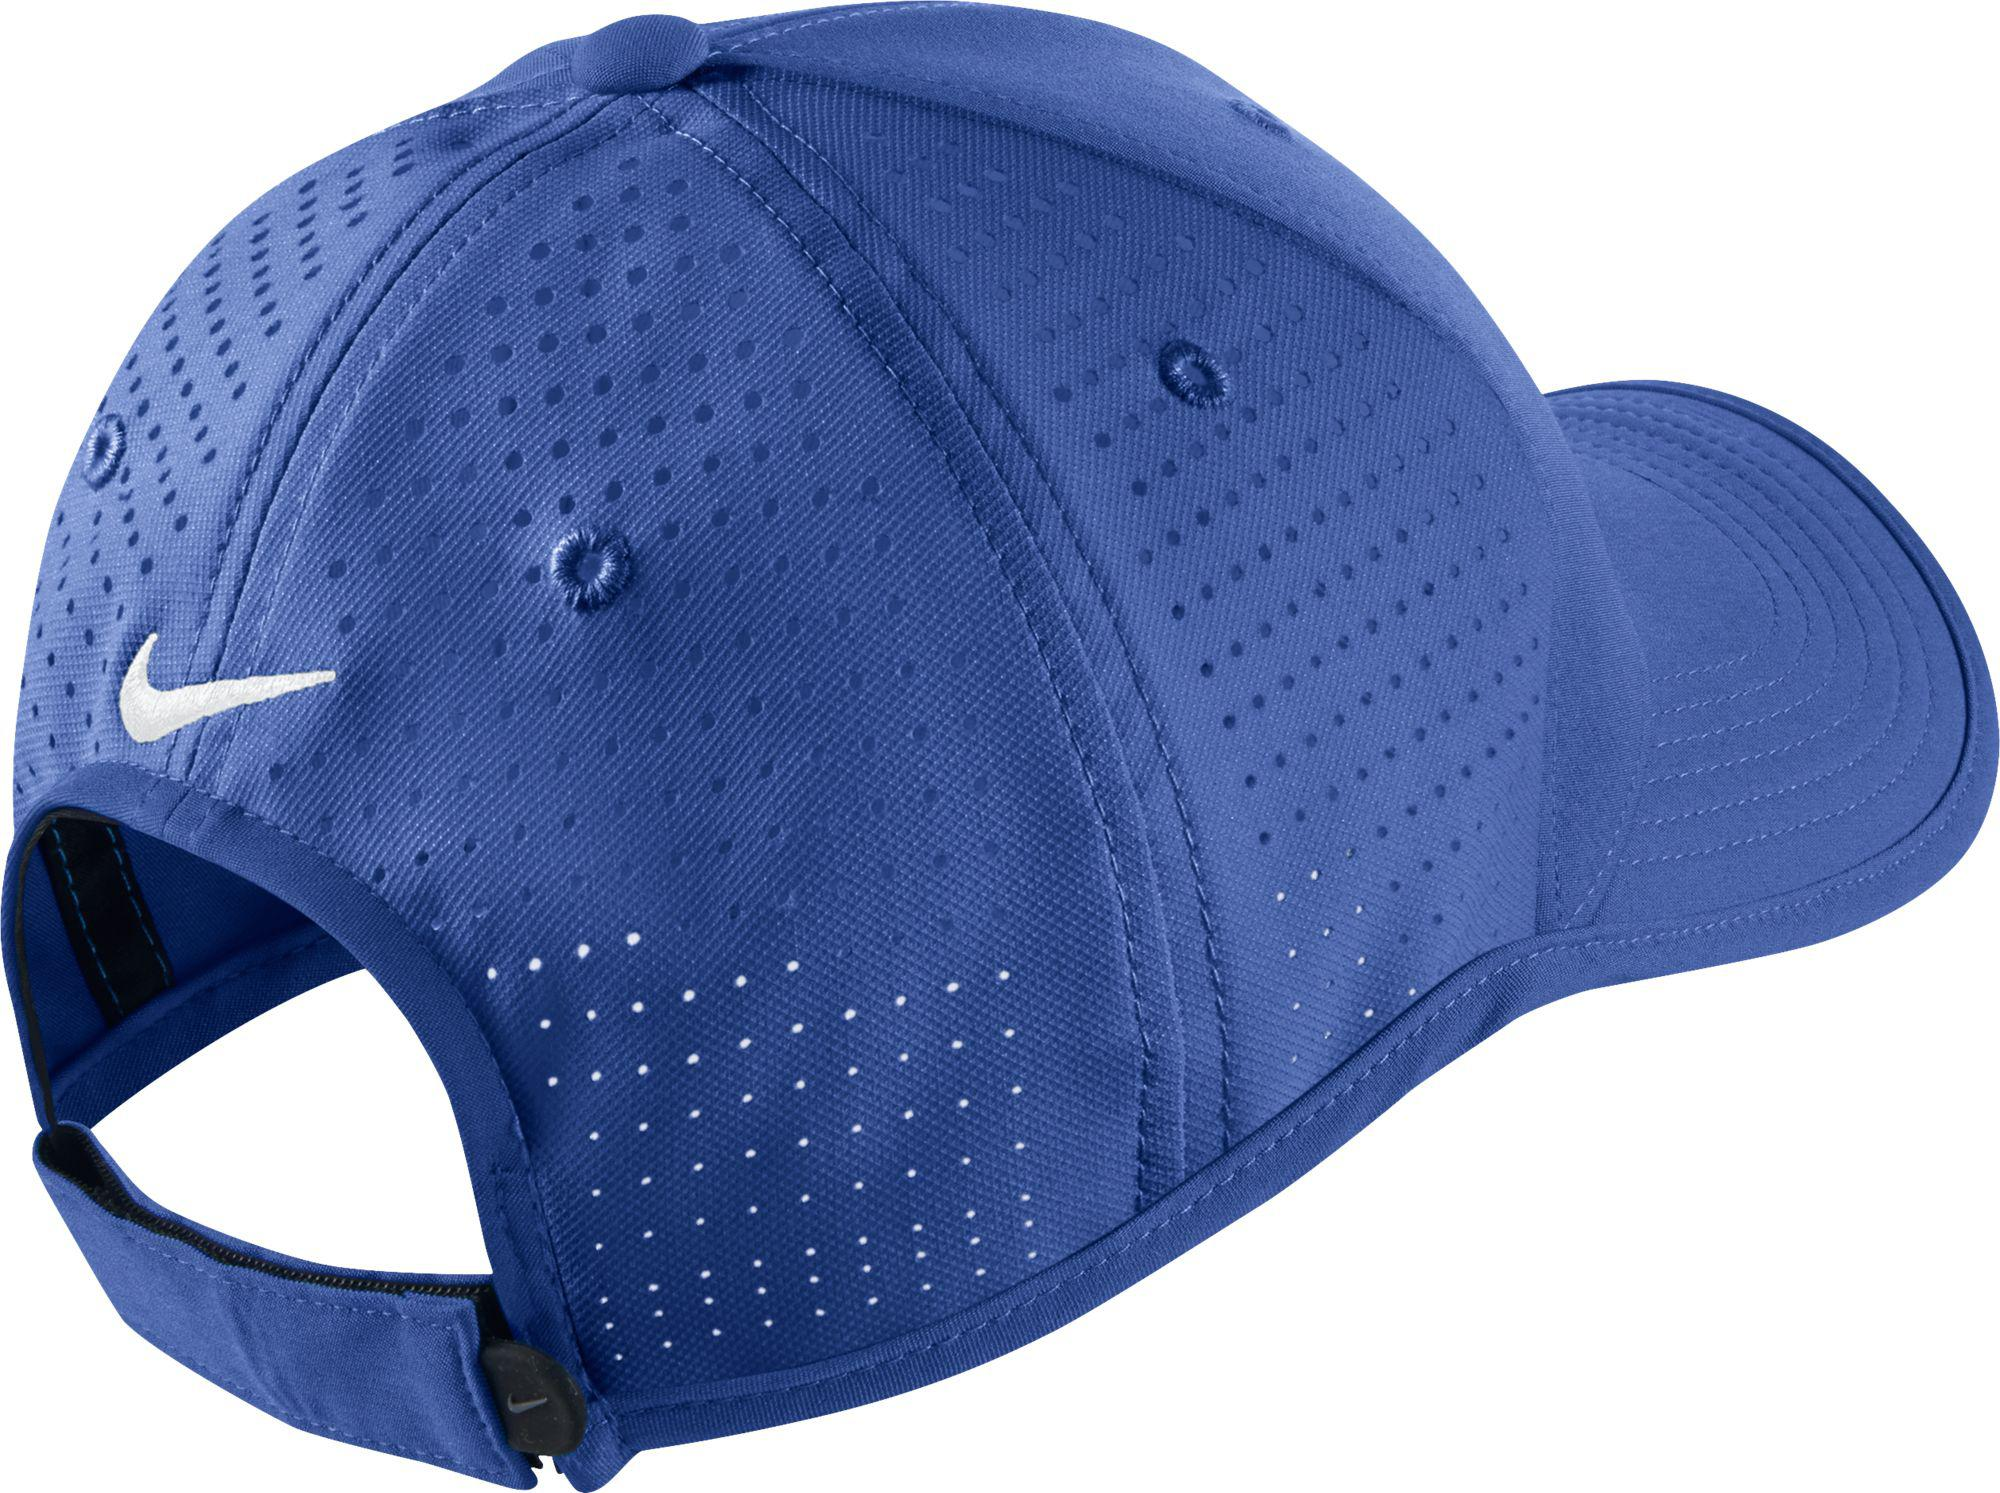 Lyst - Nike Tiger Woods Ultralight Tour Golf Hat in Blue for Men dfd86f9b660